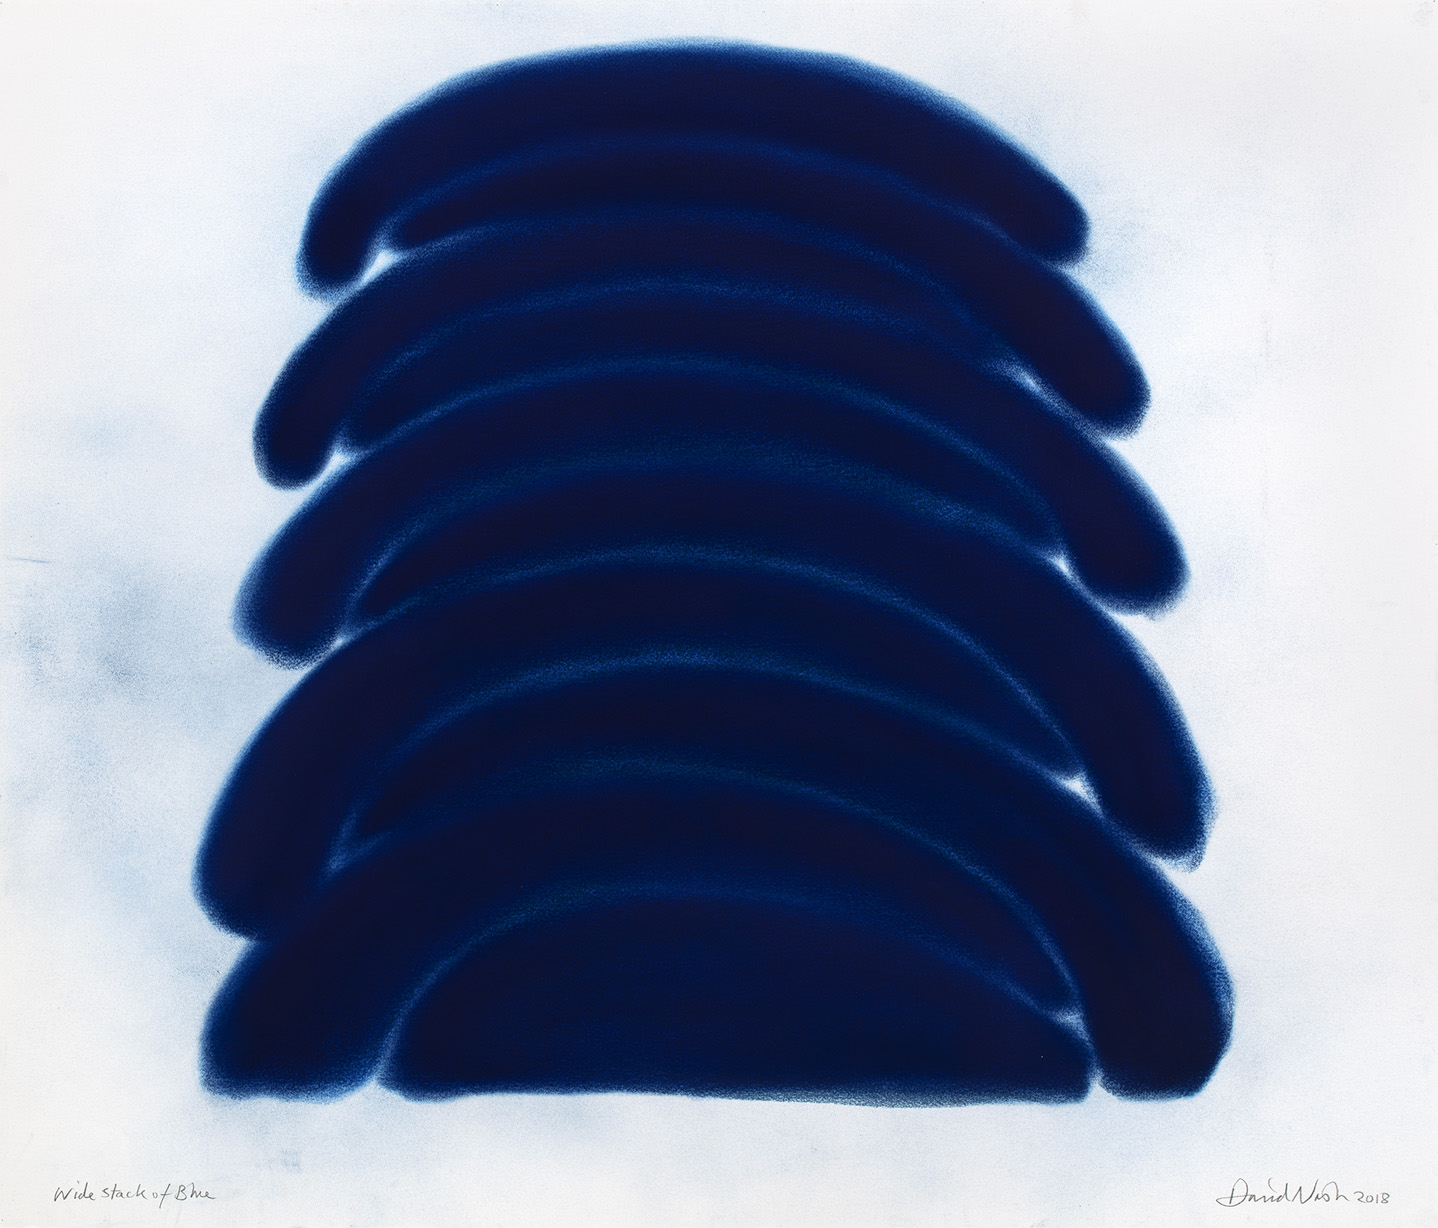 oeuvres Wide Stack of Blue David Nash